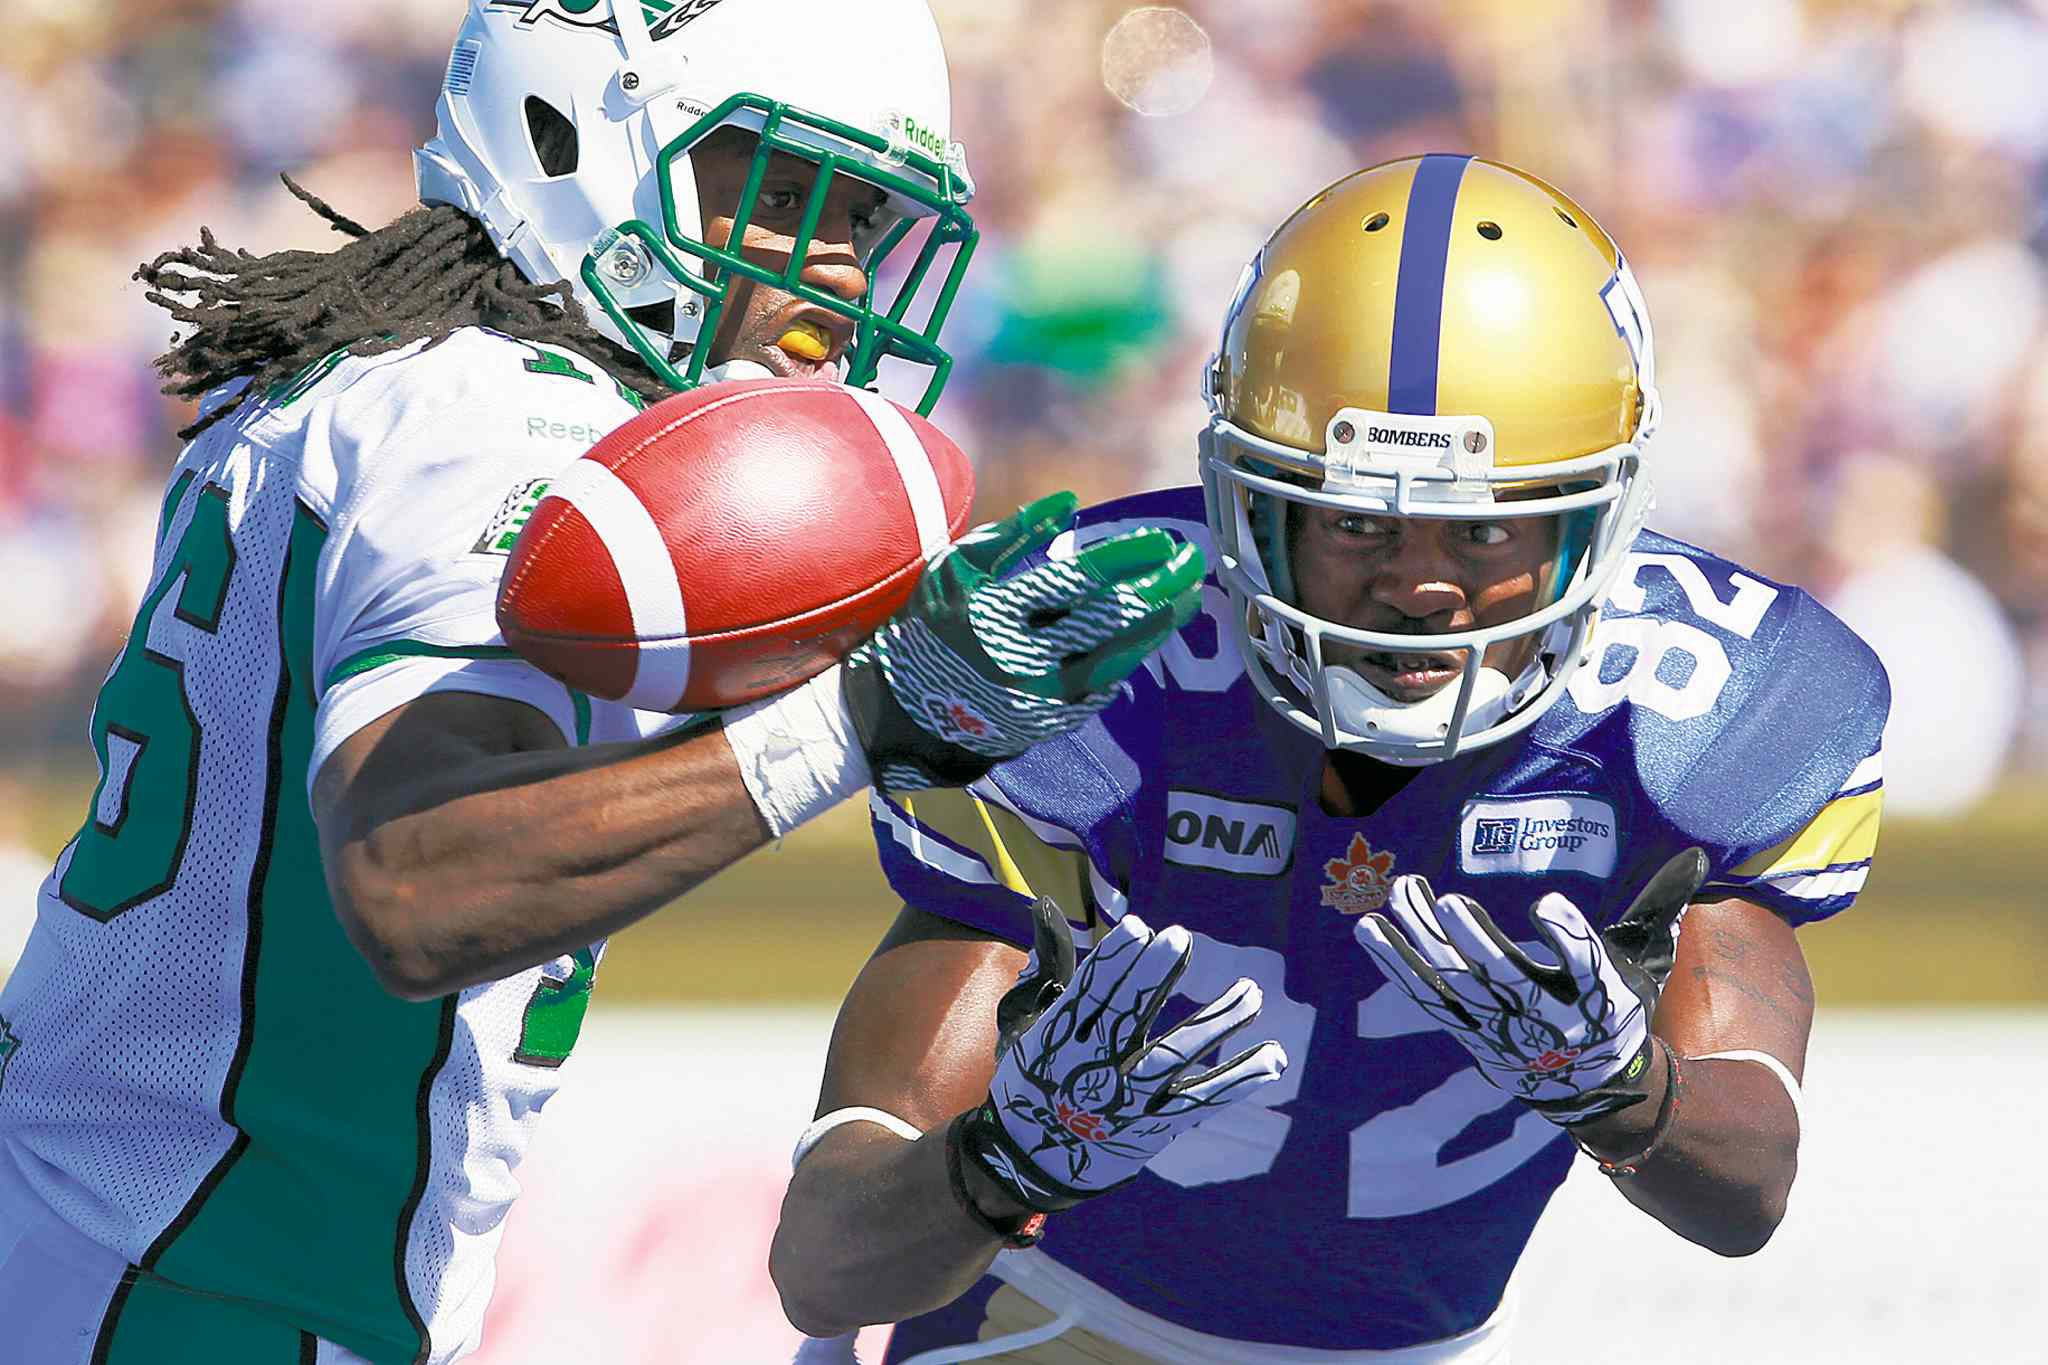 John Woods / the canadian press archivesReceiver Terrence Edwards doesn�t know when he�ll play his last game, but says when that day comes it will be as a member of the Blue Bombers.